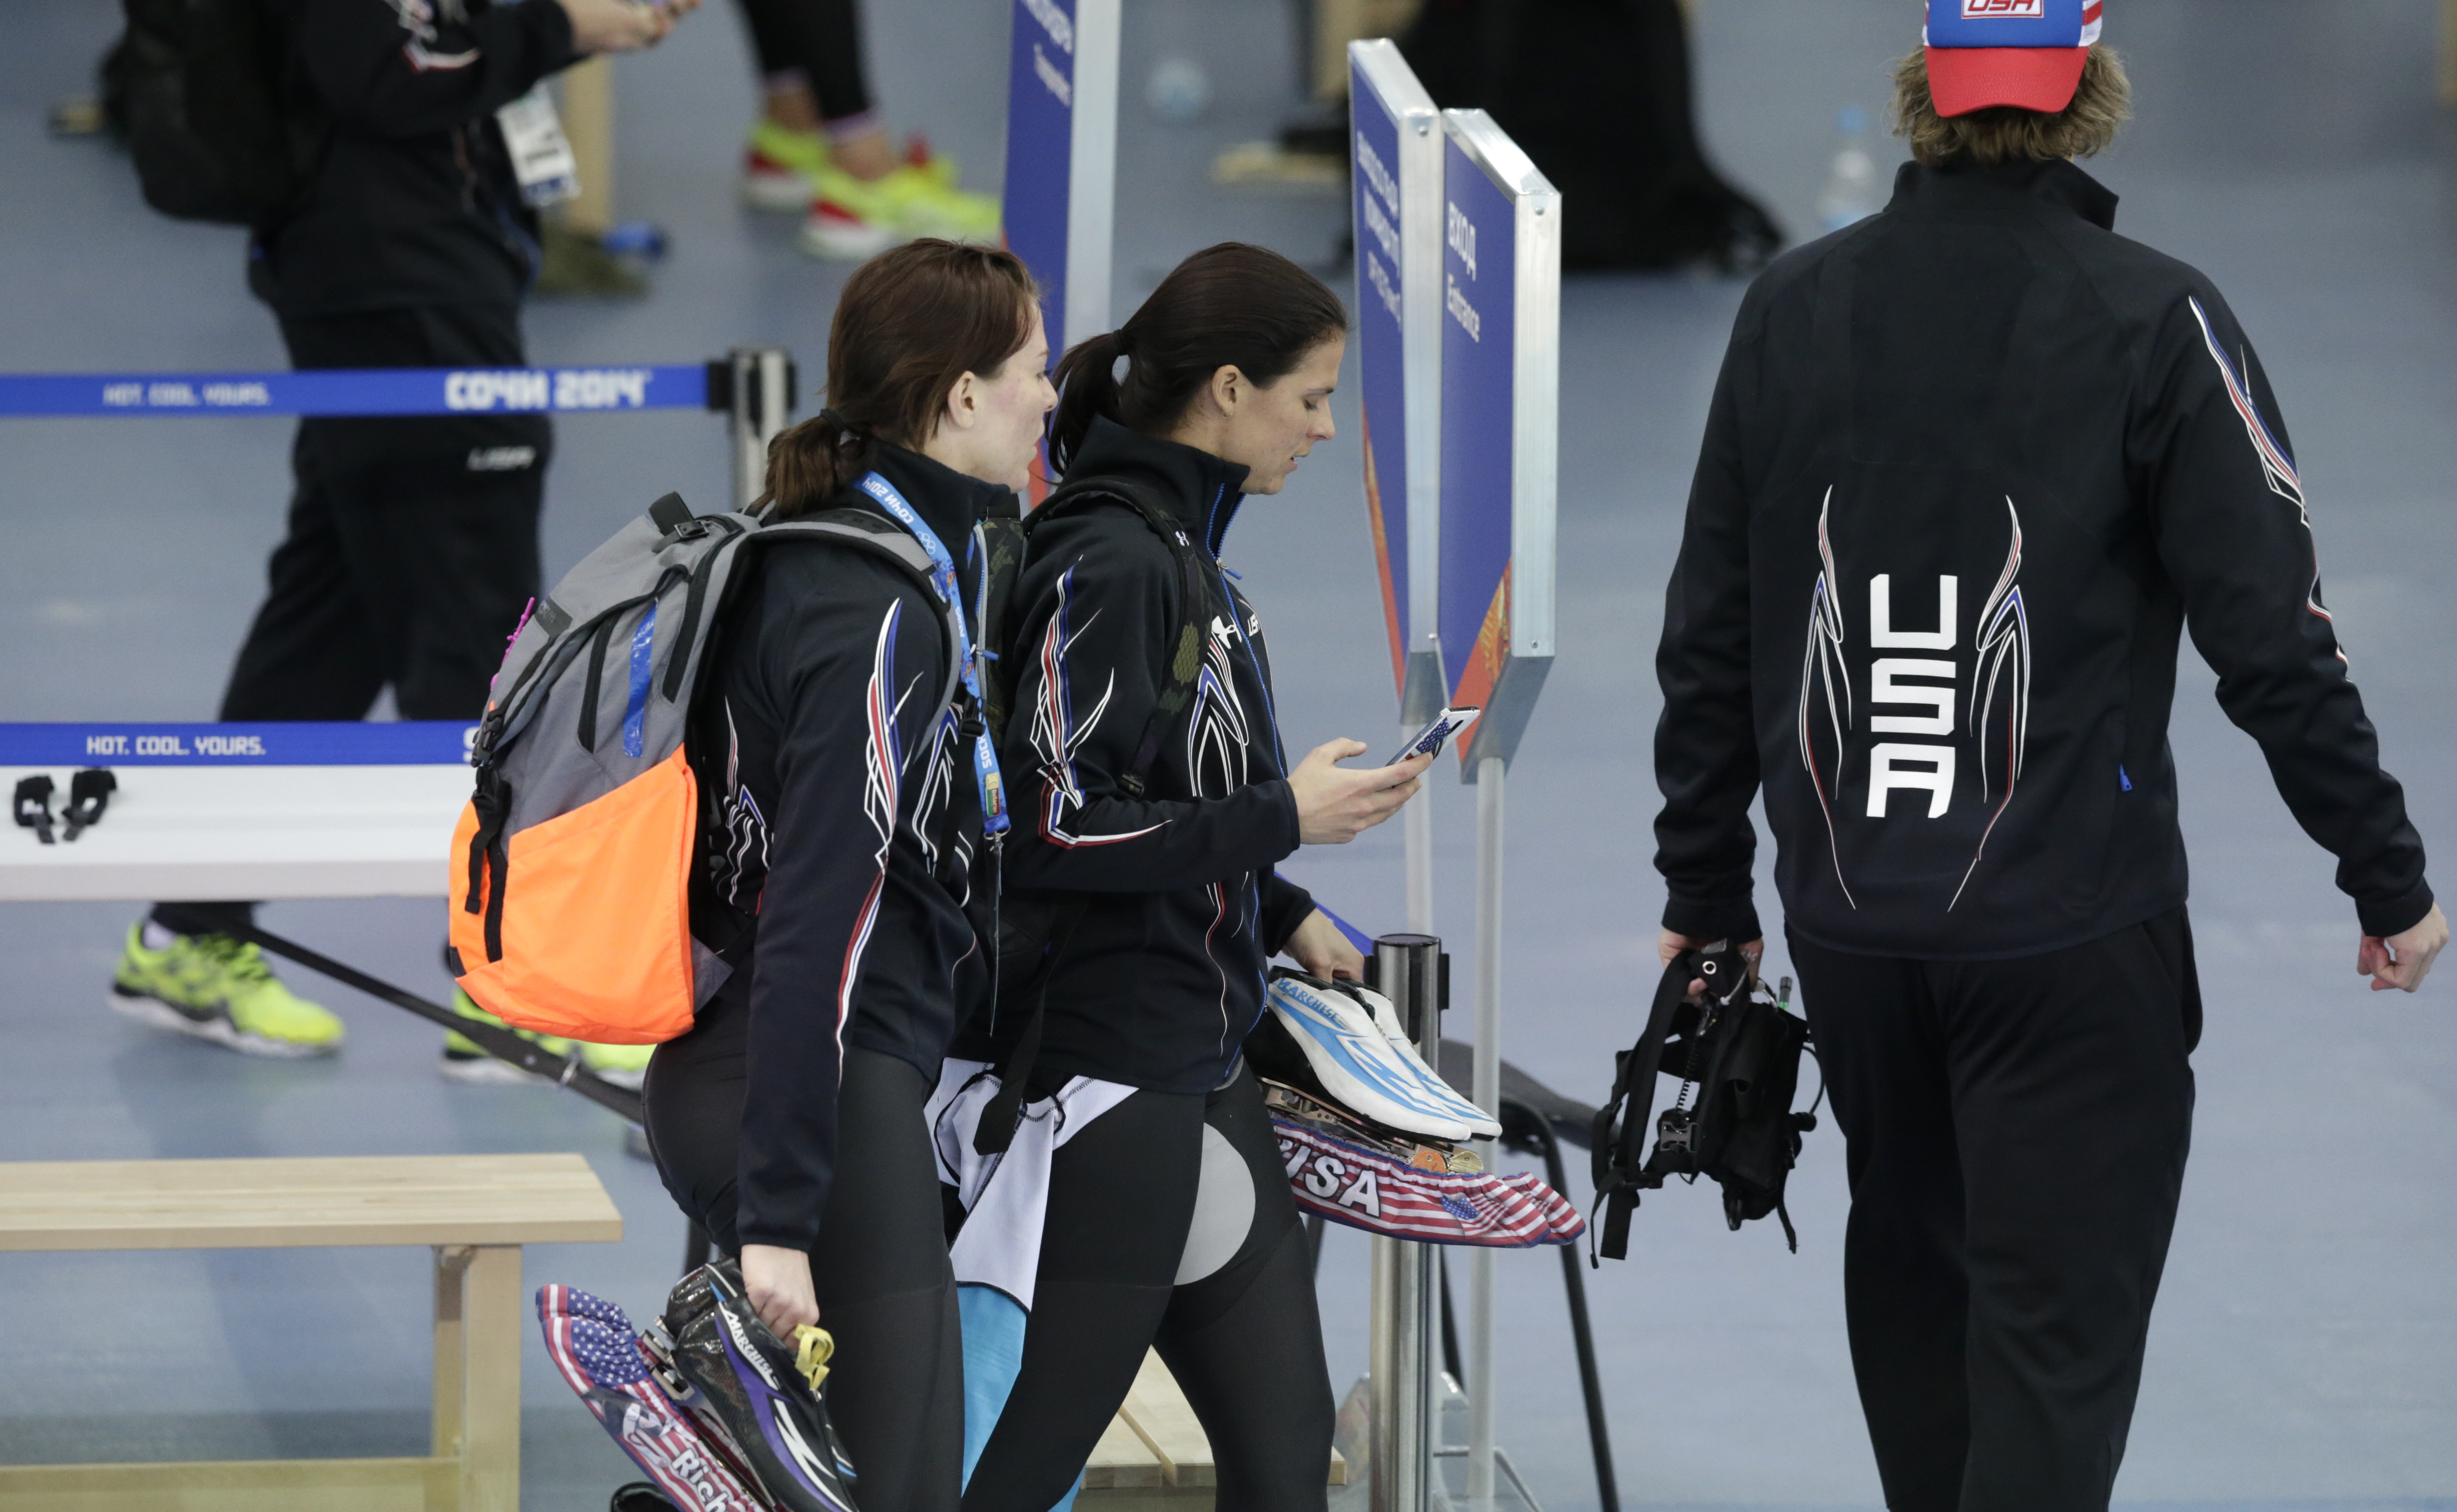 U.S. speedskaters Heather richardson, left, and Brittany Bowe hold their skates and walk out of the arena after competing in the women's team pursuit race to take sixth place against Canada at the Adler Arena Skating Center at the 2014 Winter Olympics, Saturday, Feb. 22, 2014, in Sochi, Russia. (AP Photo/Matt Dunham)